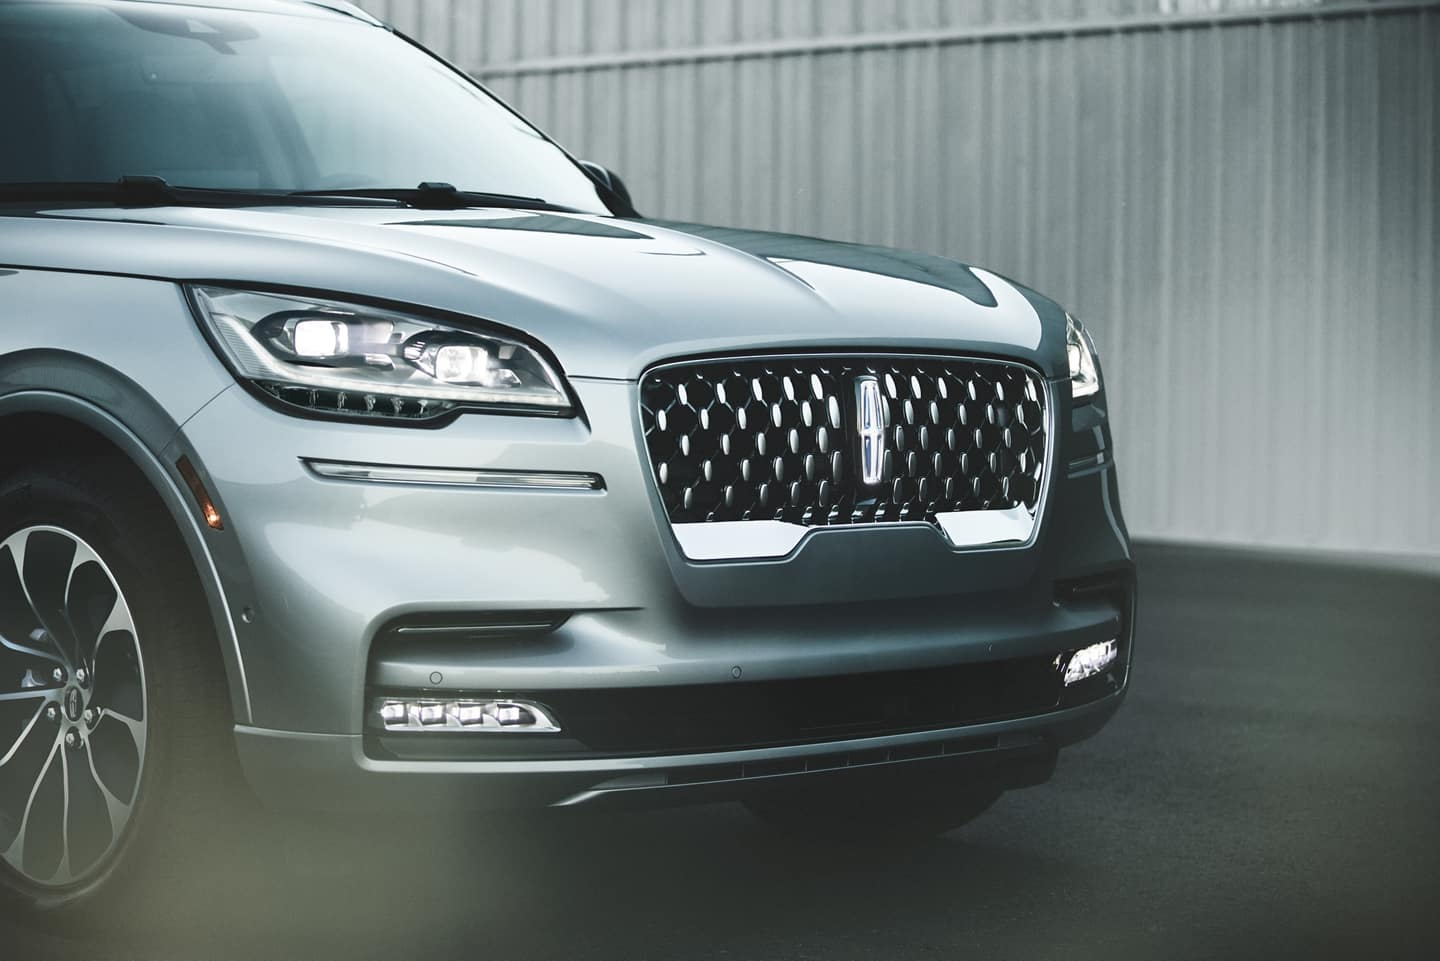 Picture of the headlamp of the Lincoln Navigator